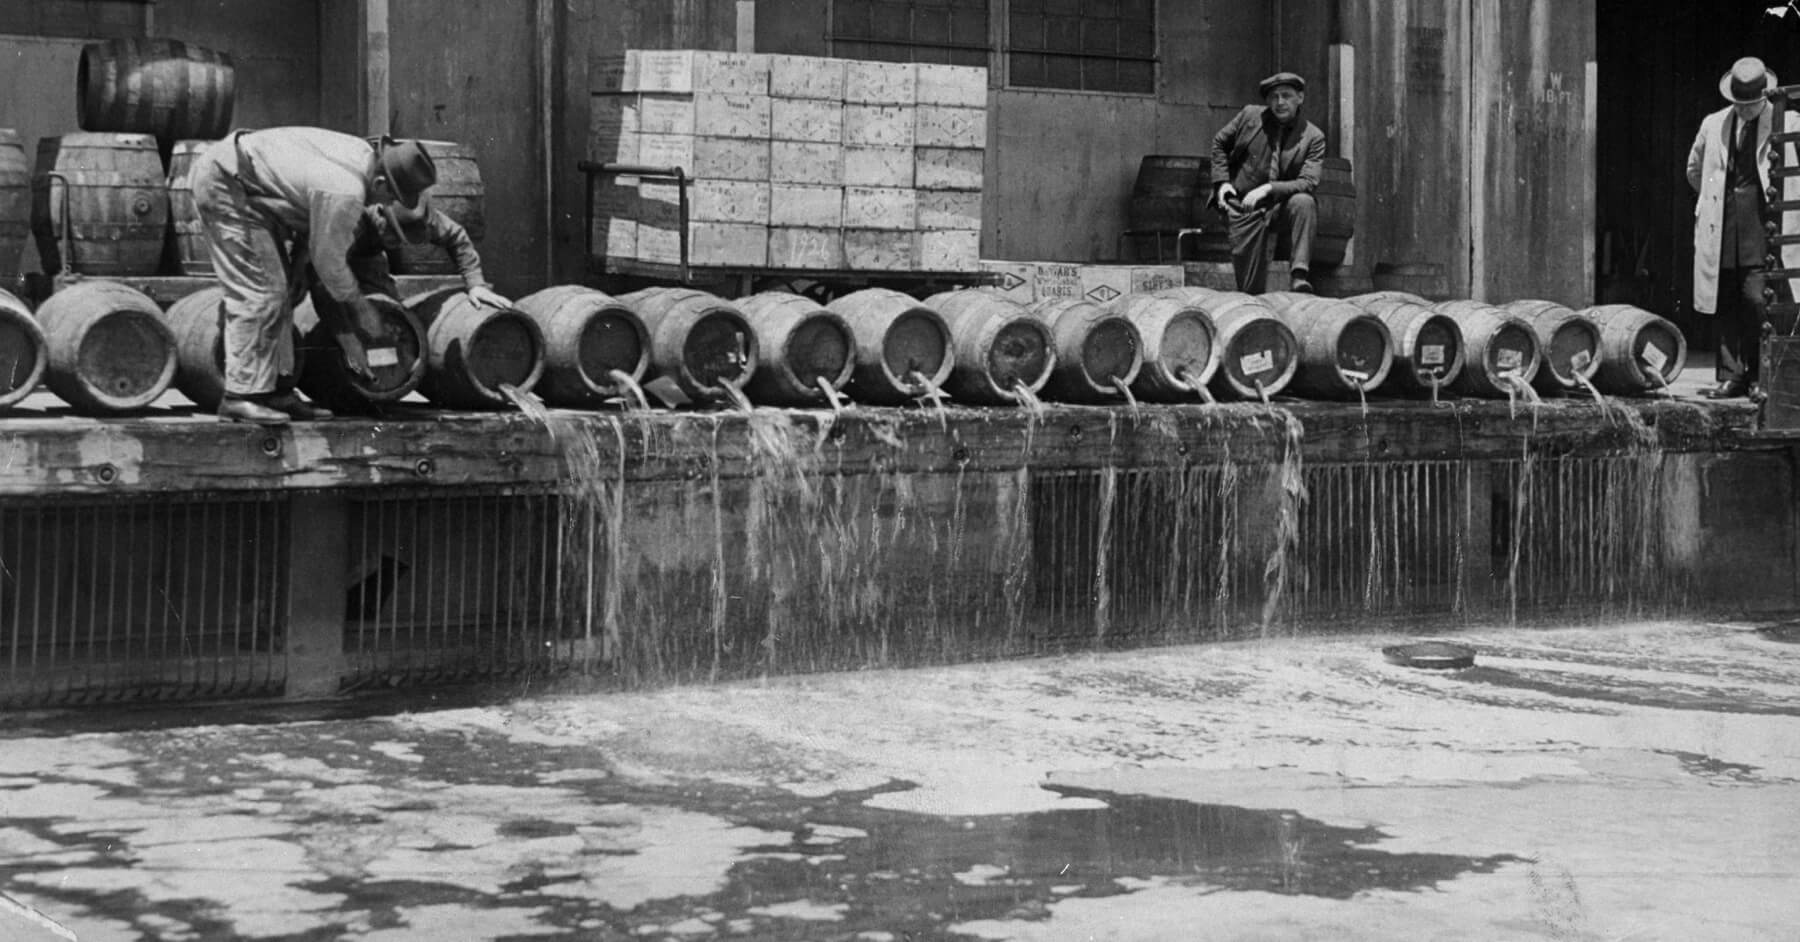 Alcohol Prohibition raid in the 1920s